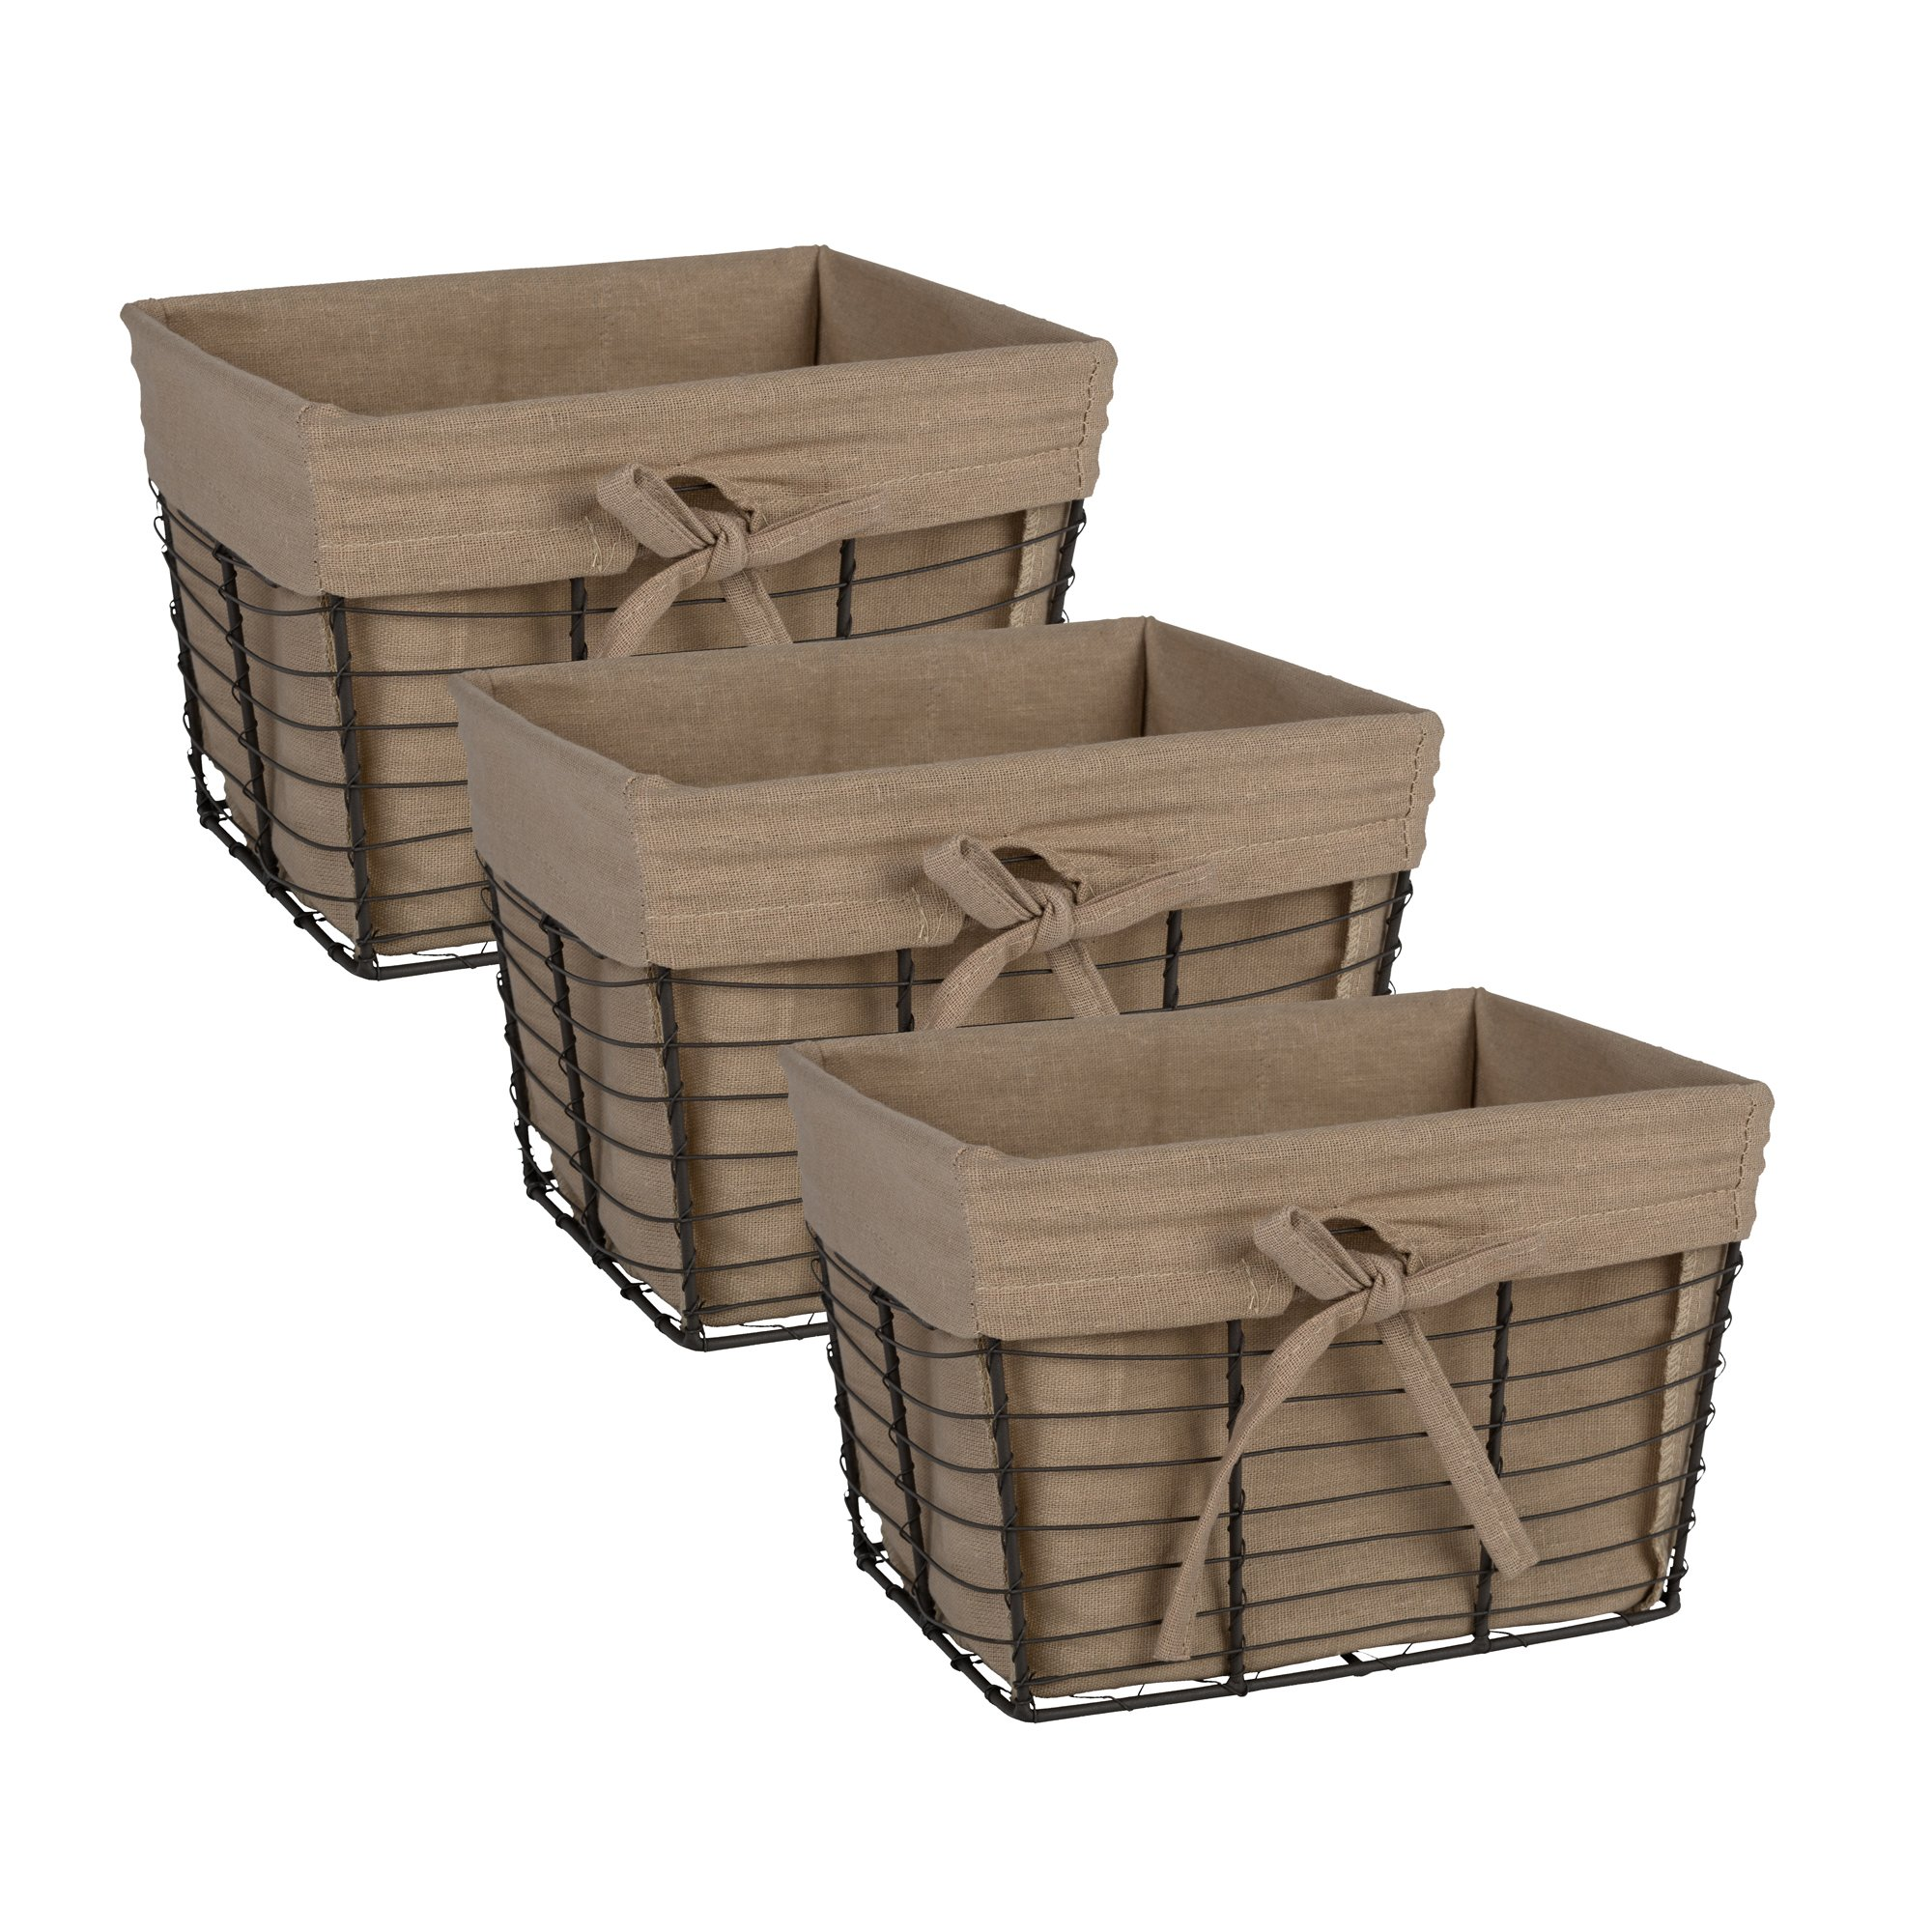 Home Traditions Vintage Metal Chicken Wire Storage Basket with Removable Fabric Liner Set of 3 Small Sized Desert Taupe Fabric with Grey Wire  sc 1 st  eBay & Storage Basket Containers Bins Box Cube Wire Fabric Liners Vintage ...